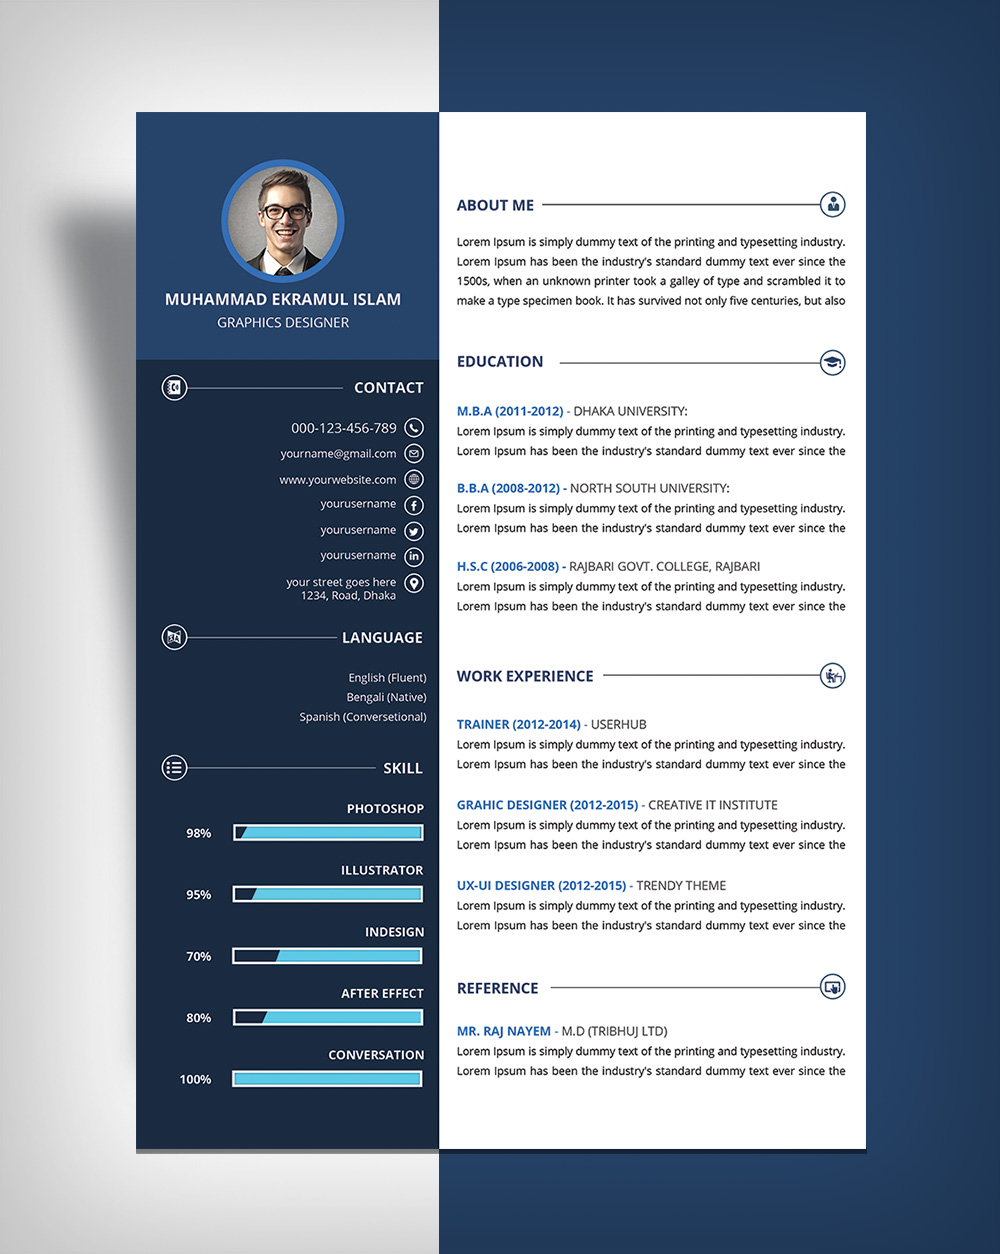 Free Beautiful Resume (CV) Design Template PSD File (3)